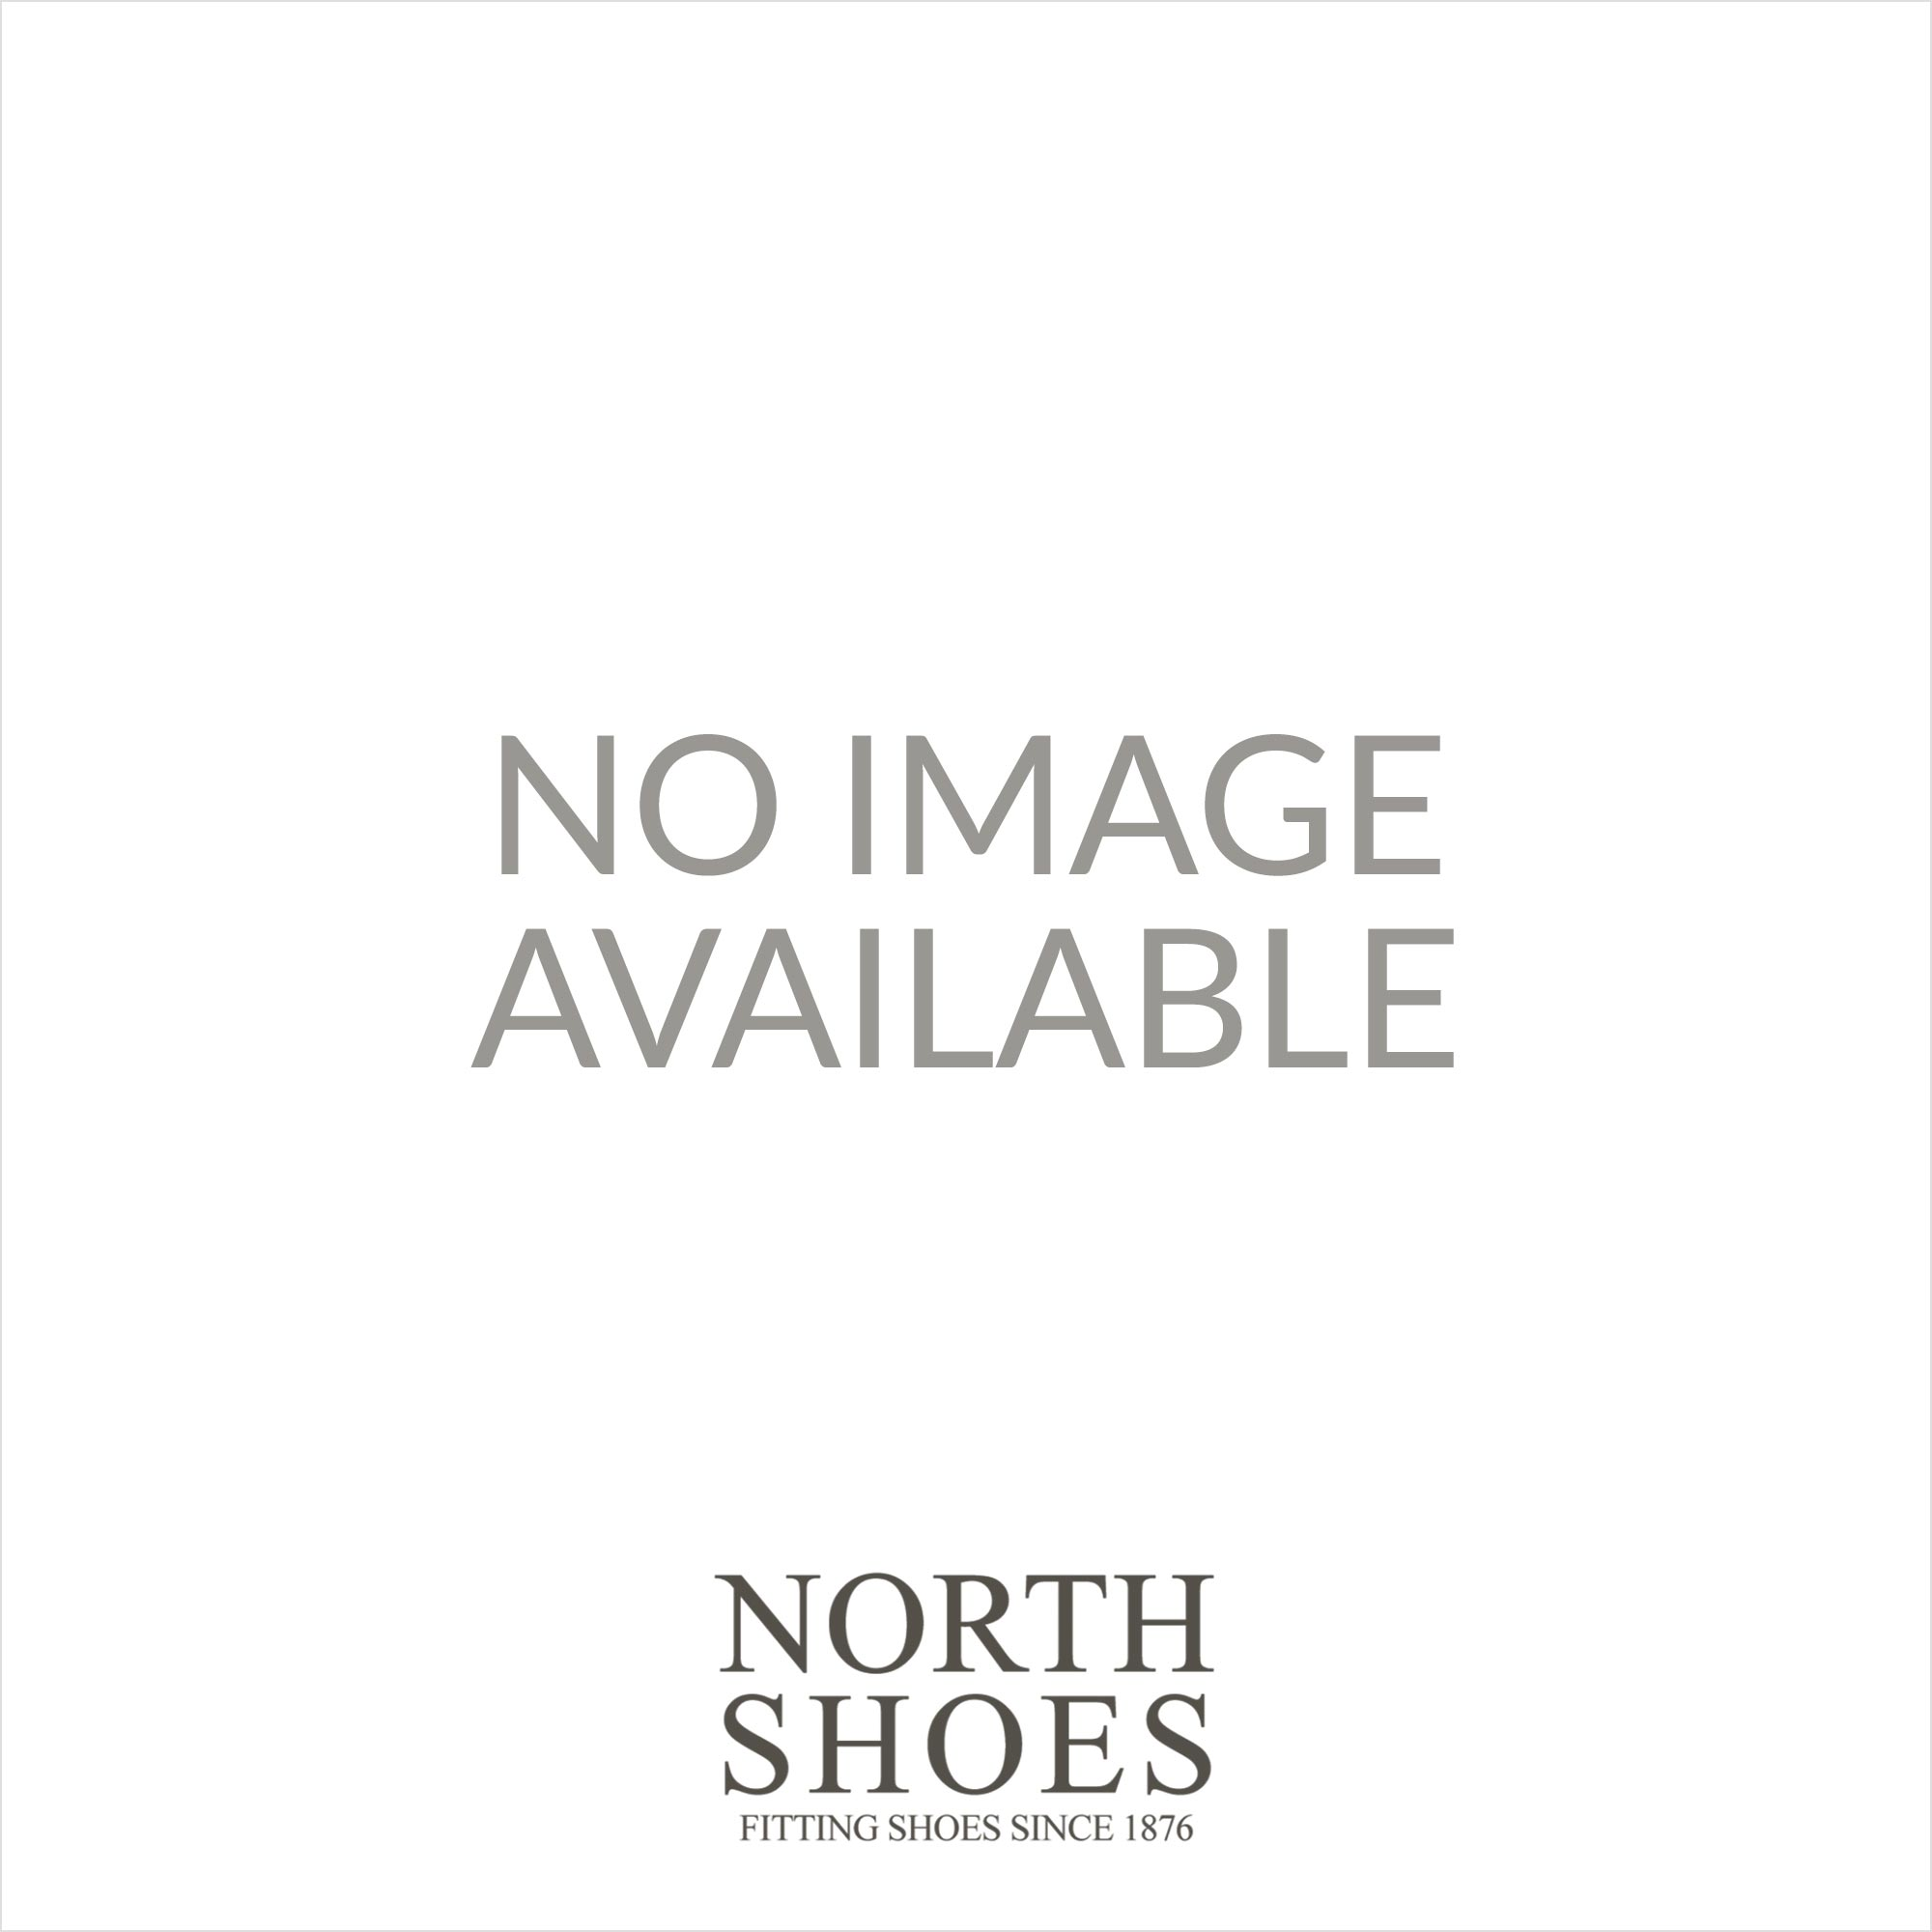 47e0749e88990d Skechers On The Go 600 - Monarch 15306 Navy Knitted Mesh Womens Slip On  Mule Sandal - Skechers from North Shoes UK